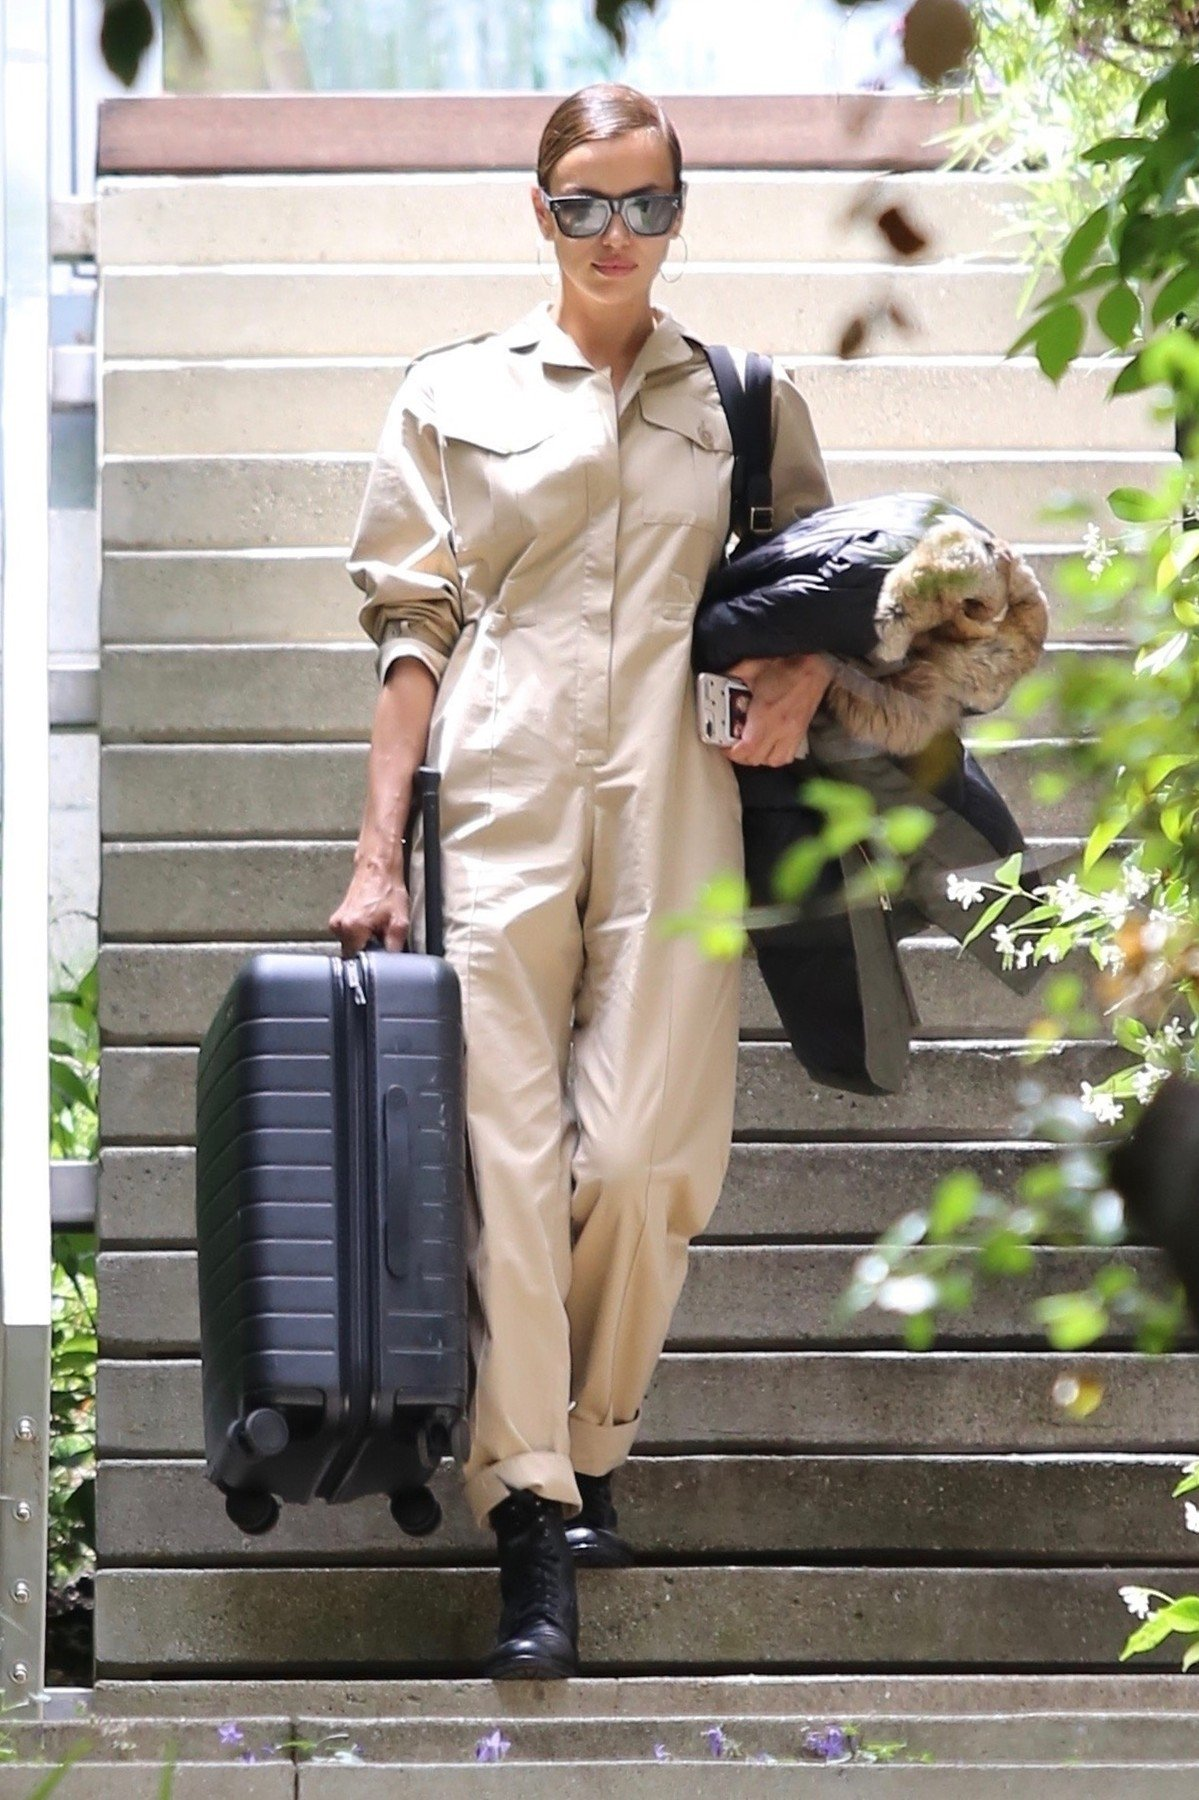 Pacific Palisades, CA  - Irina Shayk has her driver load up her suitcase as she steps out of Bradley Cooper's home in Pacific Palisades  BACKGRID USA 6 JUNE 2019, Image: 443968046, License: Rights-managed, Restrictions: , Model Release: no, Credit line: Profimedia, Backgrid USA